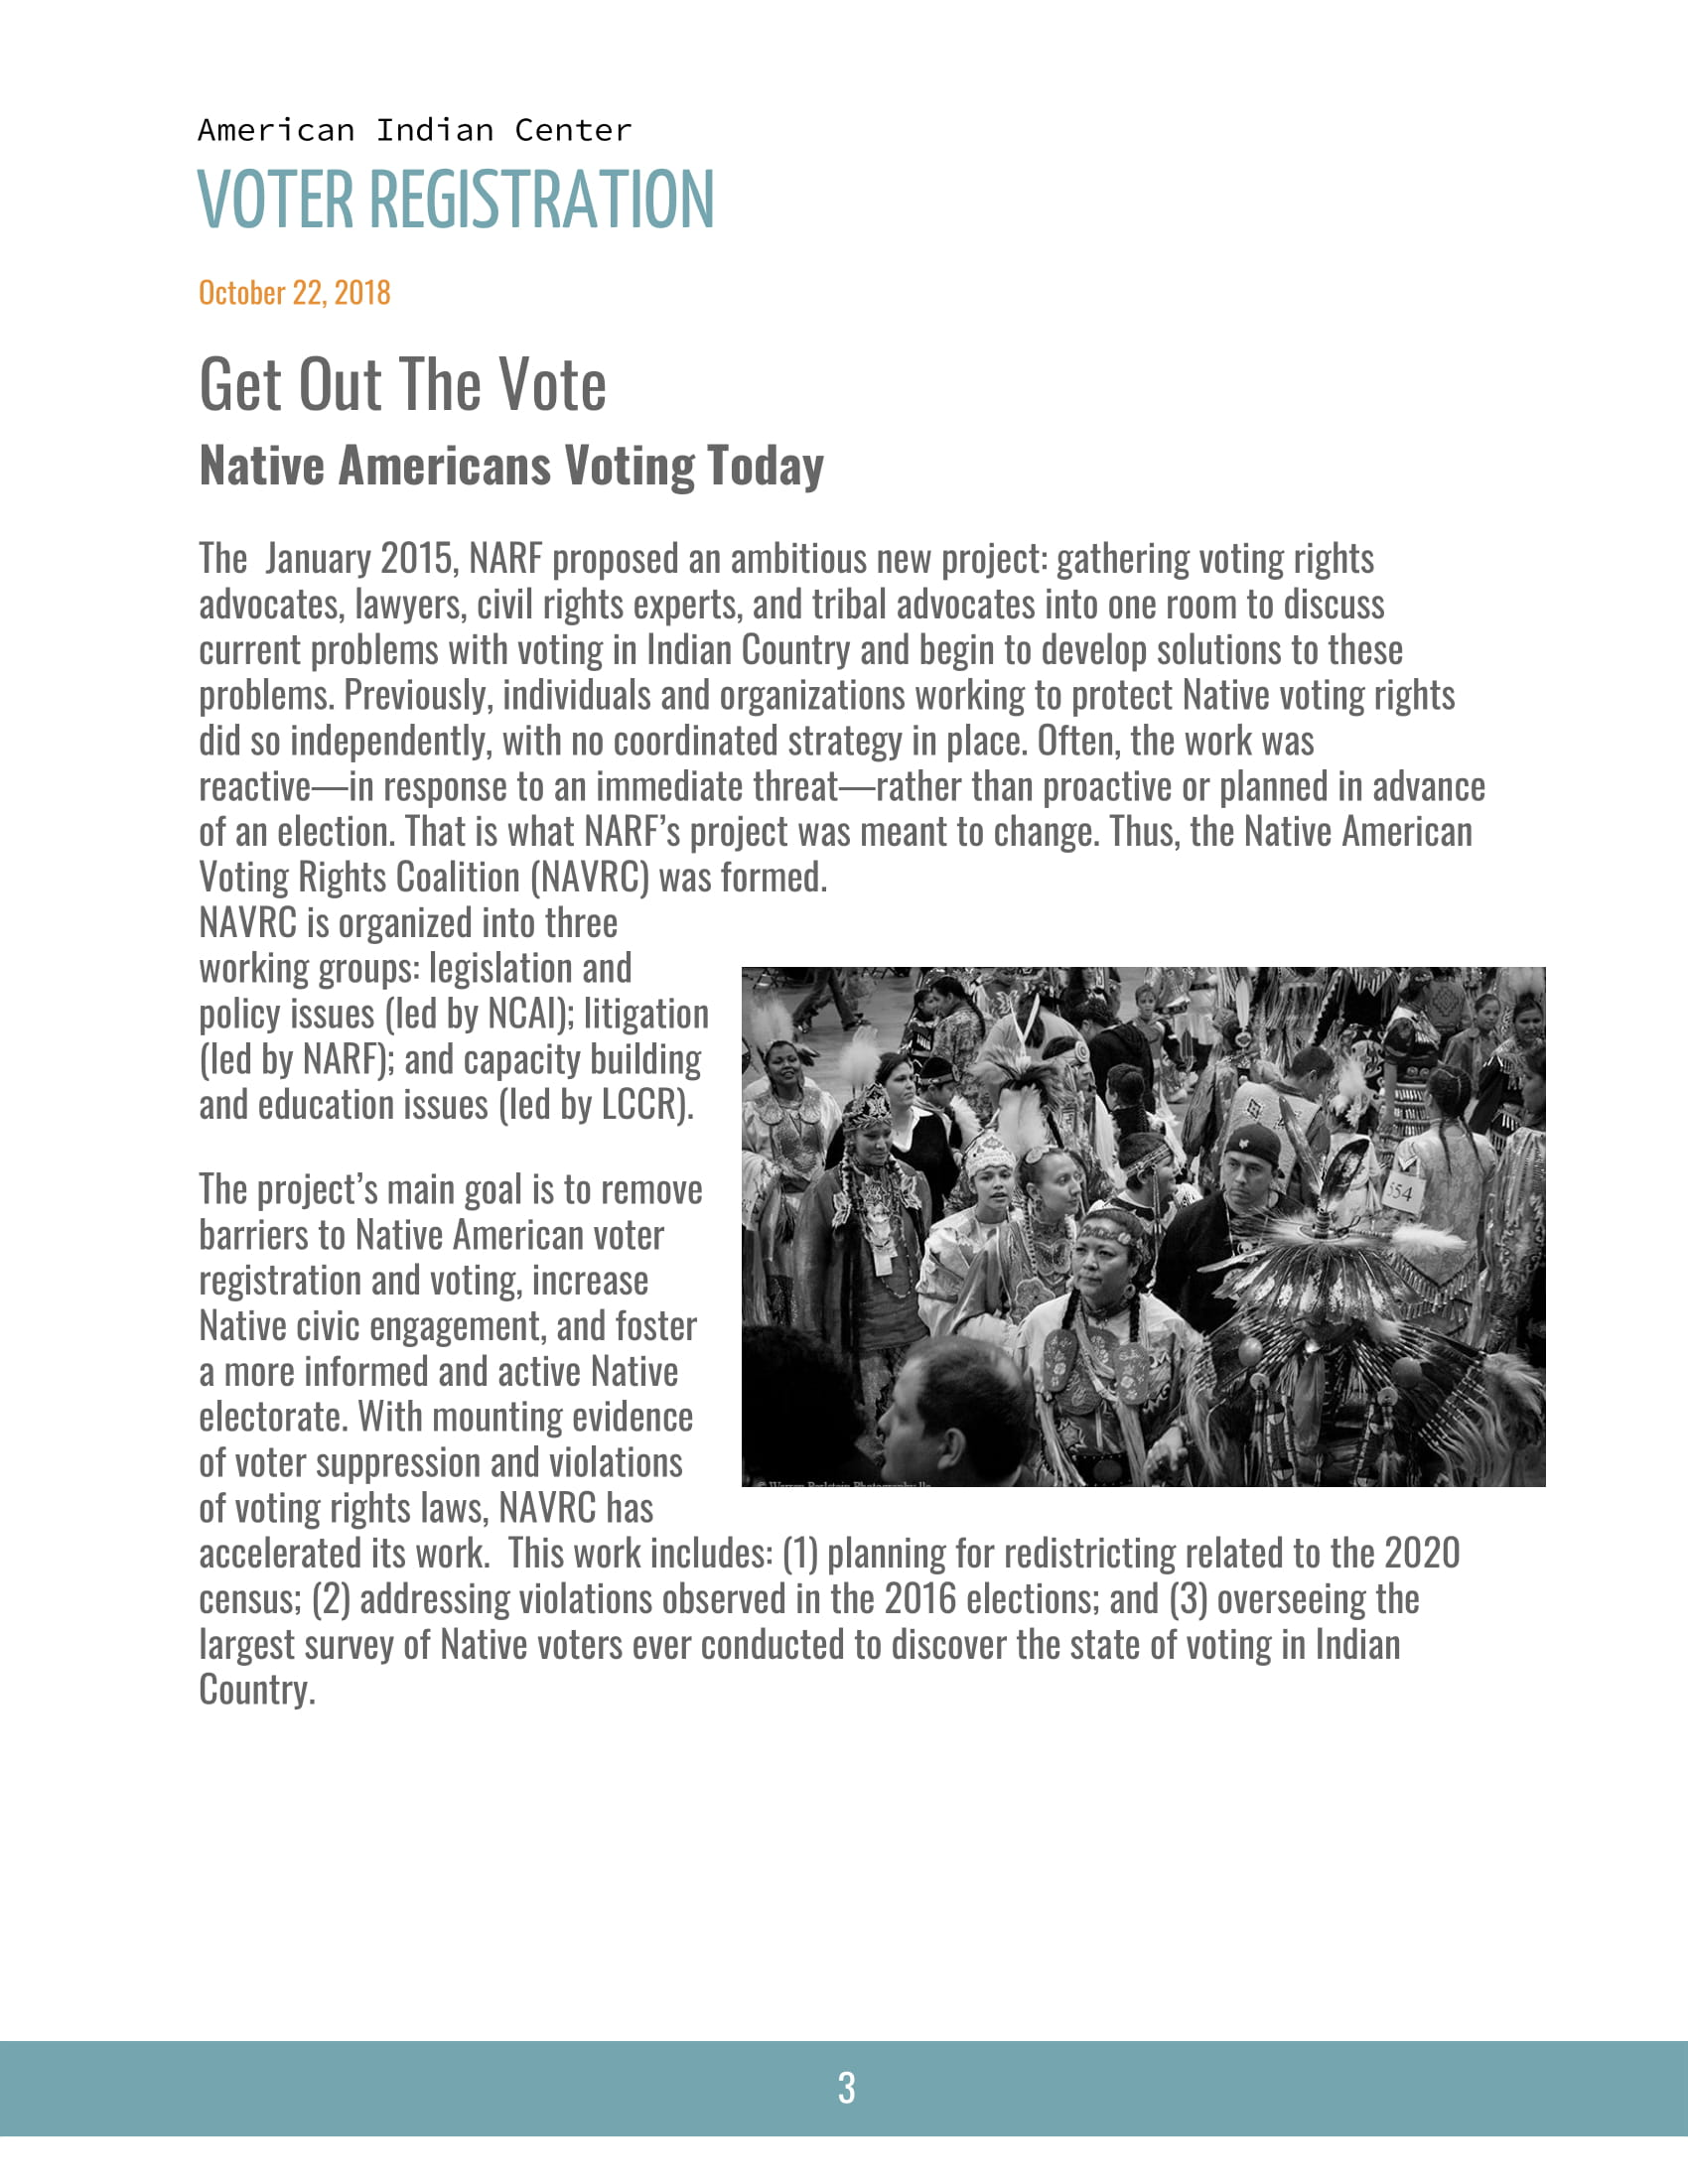 AIC Voter Registration Newsletter-3.jpg